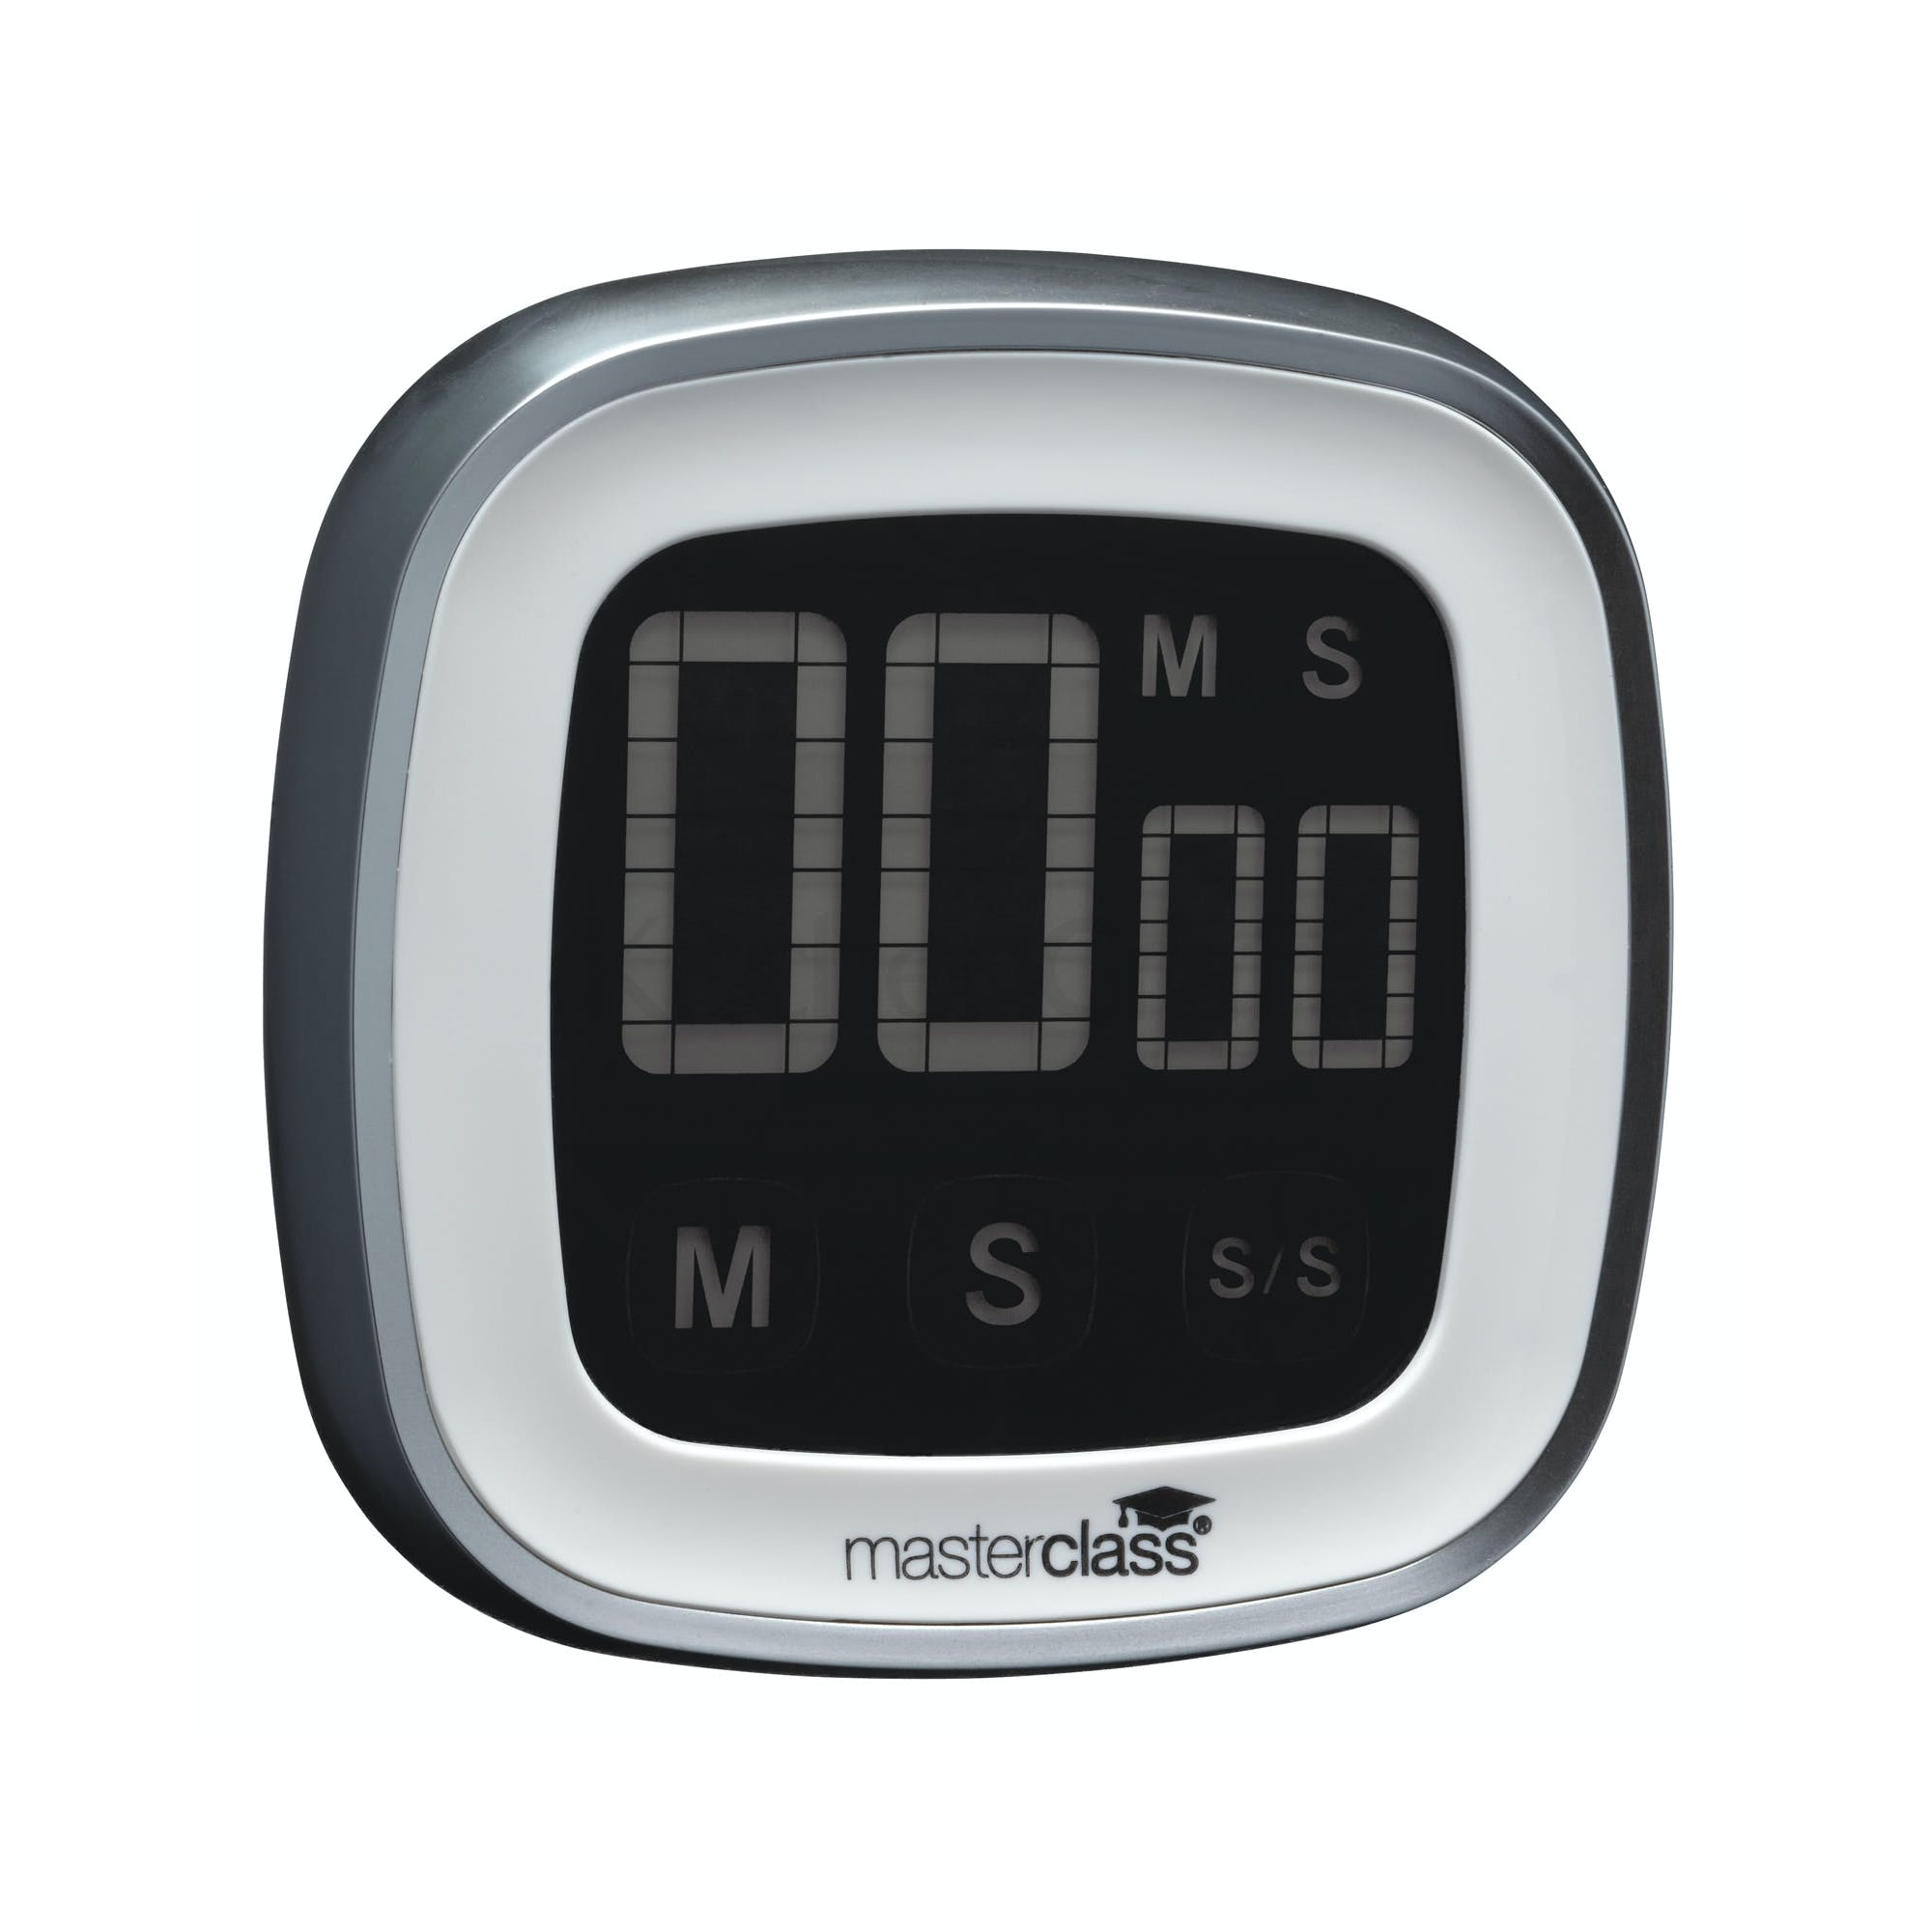 Masterclass Digital Touch Screen Timer Thermometers Timers